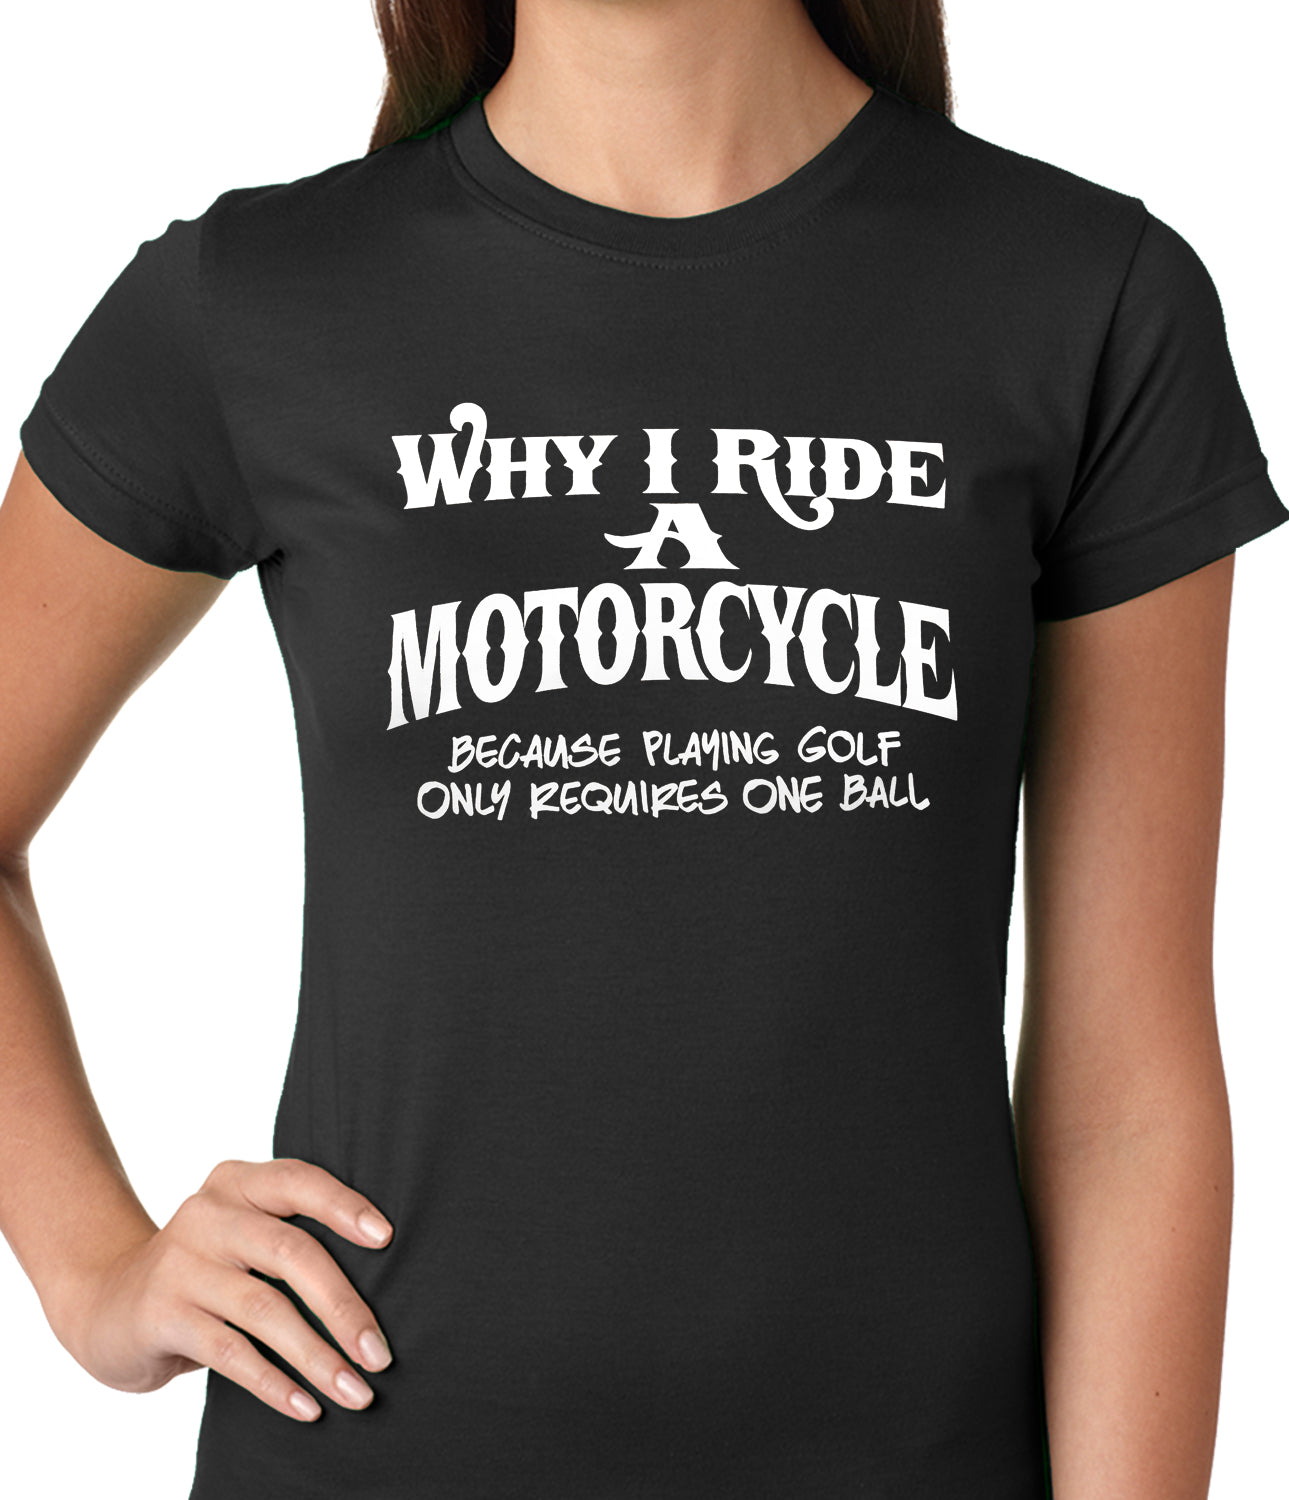 2487e5d4 Why I Ride a Motorcycle Ladies T-shirt – Bewild